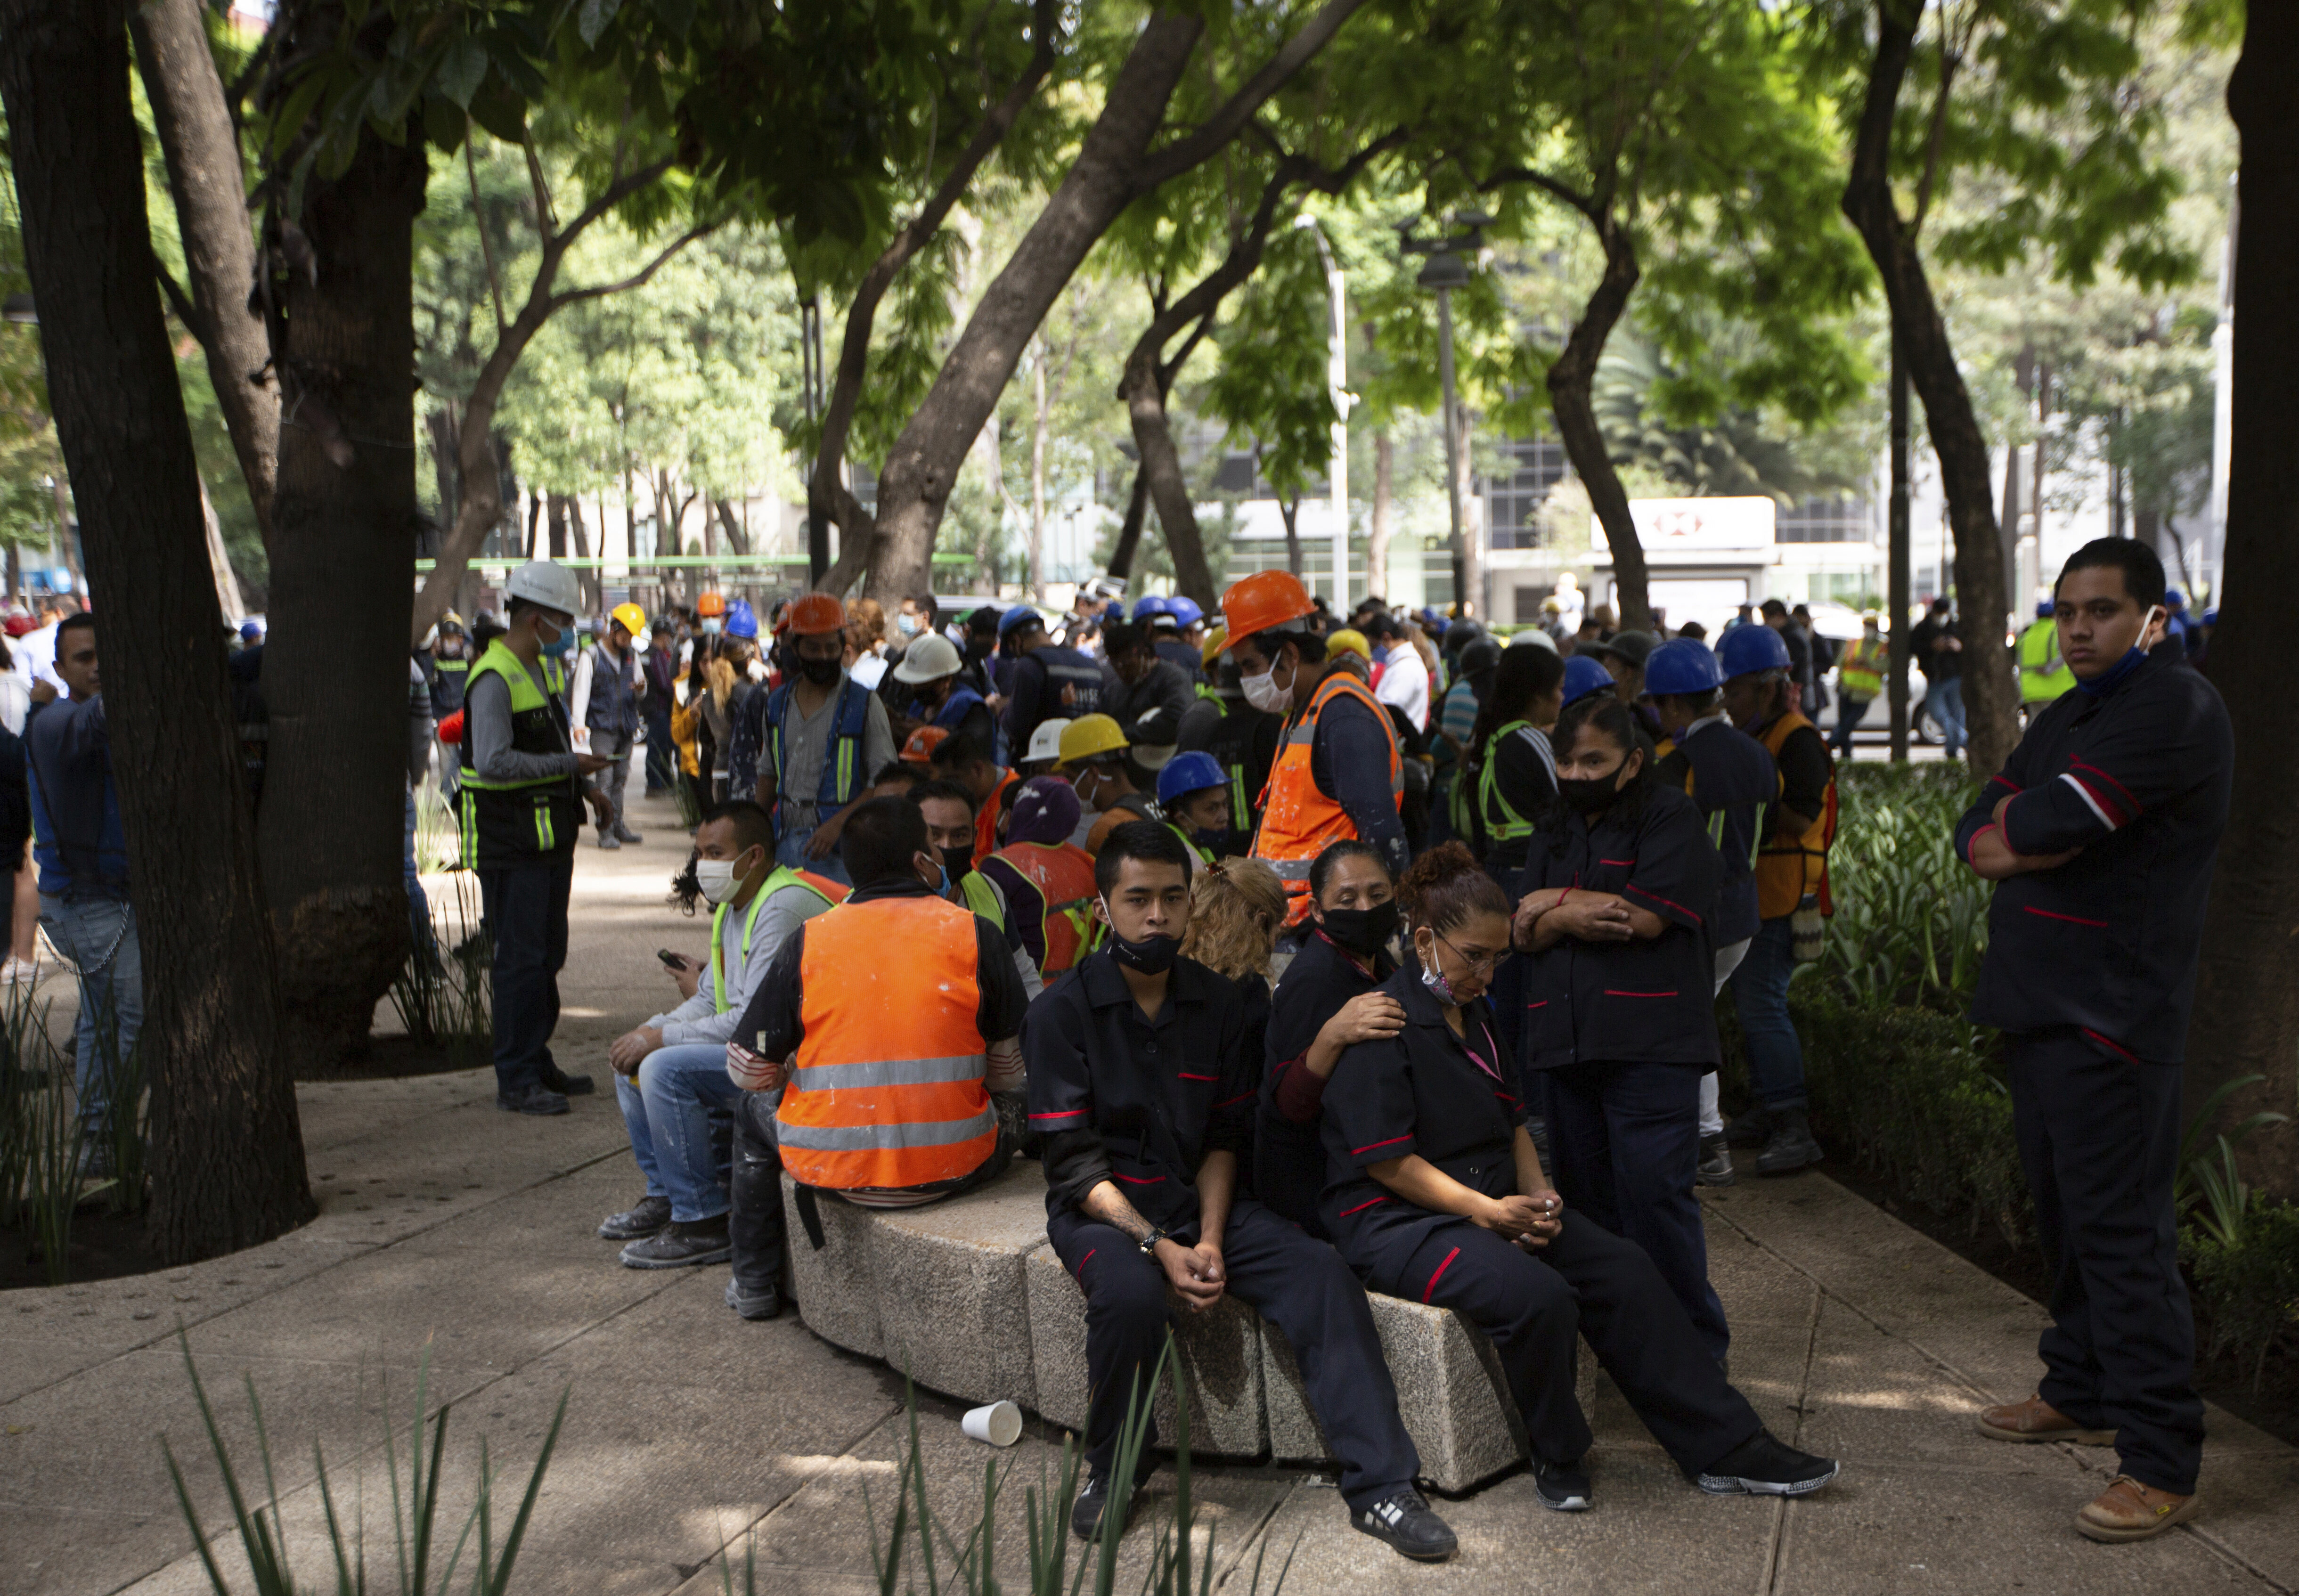 Employees gather outside of their work building after a 7.5 earthquake, in Mexico City, Tuesday, June 23, 2020. The earthquake centered near the resort of Huatulco in southern Mexico swayed buildings Tuesday in Mexico City and sent thousands into the streets.(AP Photo/Fernando Llano)